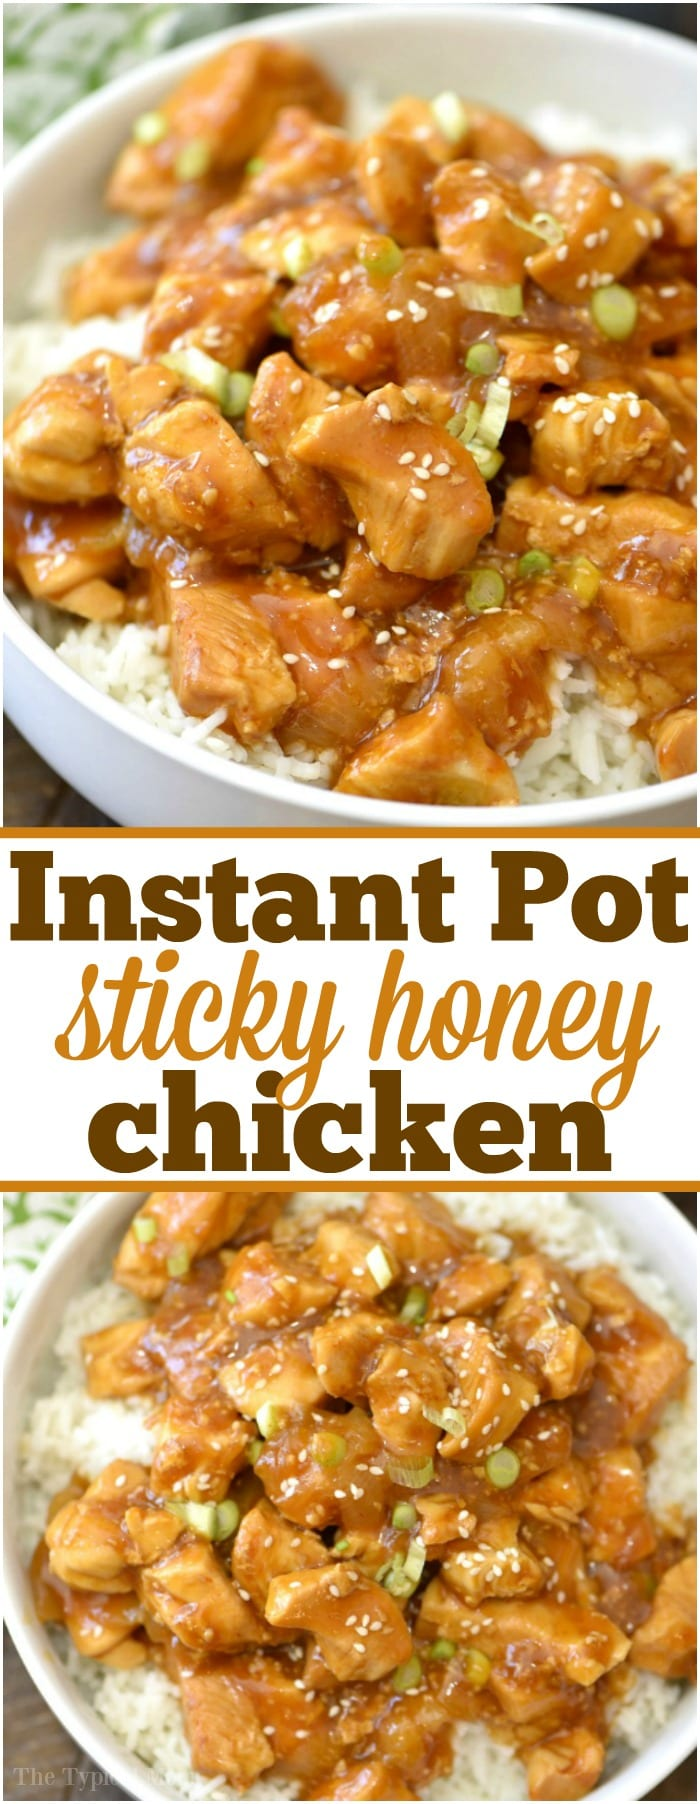 This spicy honey Instant Pot chicken takes just 4 minutes to cook and comes out moist and full of flavor! Sweet and spicy chicken bites smothered in delicious sauce which we love atop a bed of rice. A great healthy pressure cooker dinner our whole family enjoys. #instantpot #pressurecooker #honey #chicken #spicy #sweet #easy #recipe #healthy #sticky